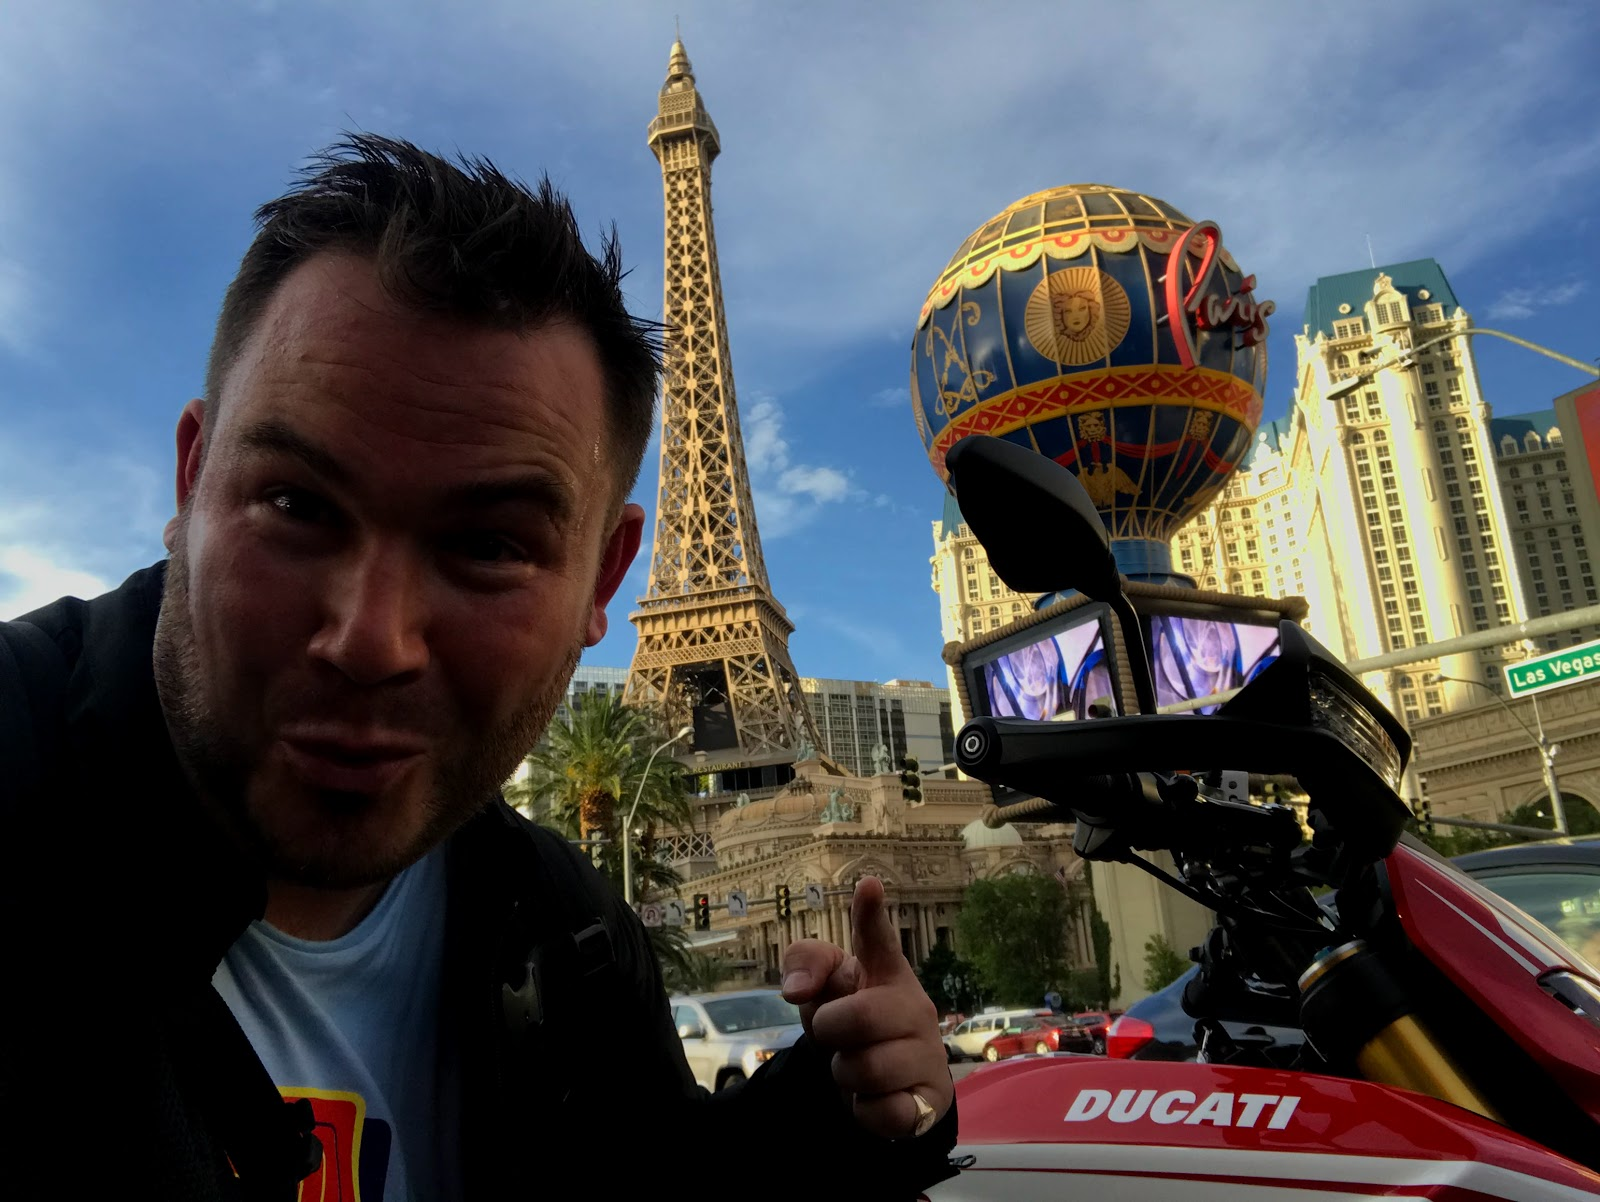 Inman Ambassador Tigh Loughhead rents a Ducati HypermotardSP on the Las Vegas Strip